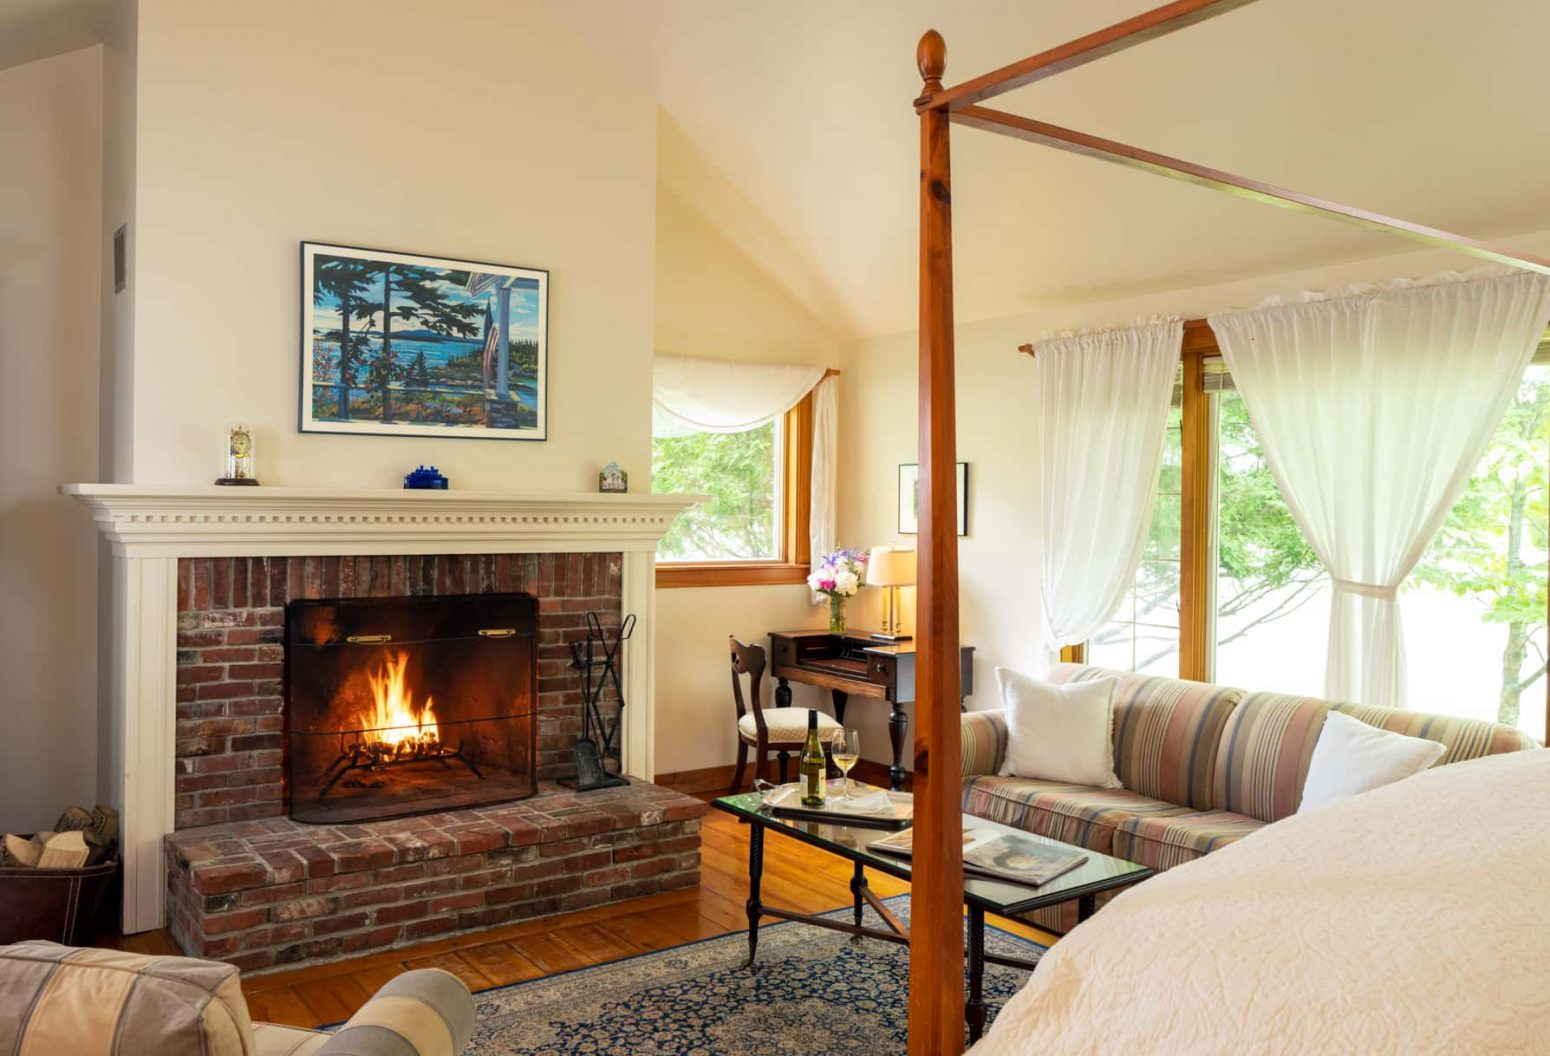 Cape House Suite with a King bed a seating area and a large fireplace